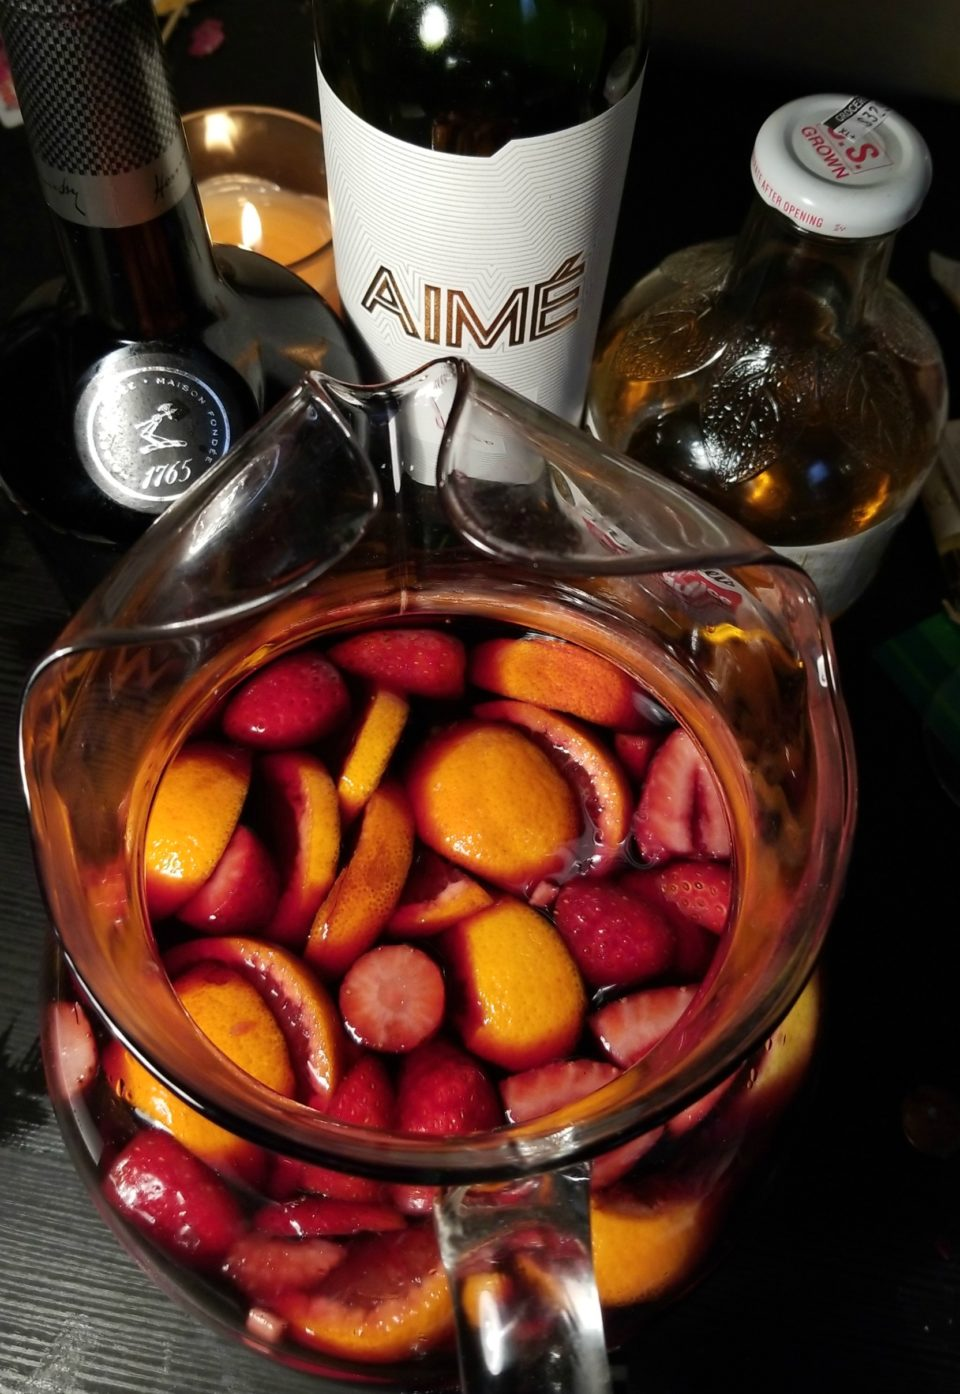 A Solstice Sangria Made With Aime Ruca Malen